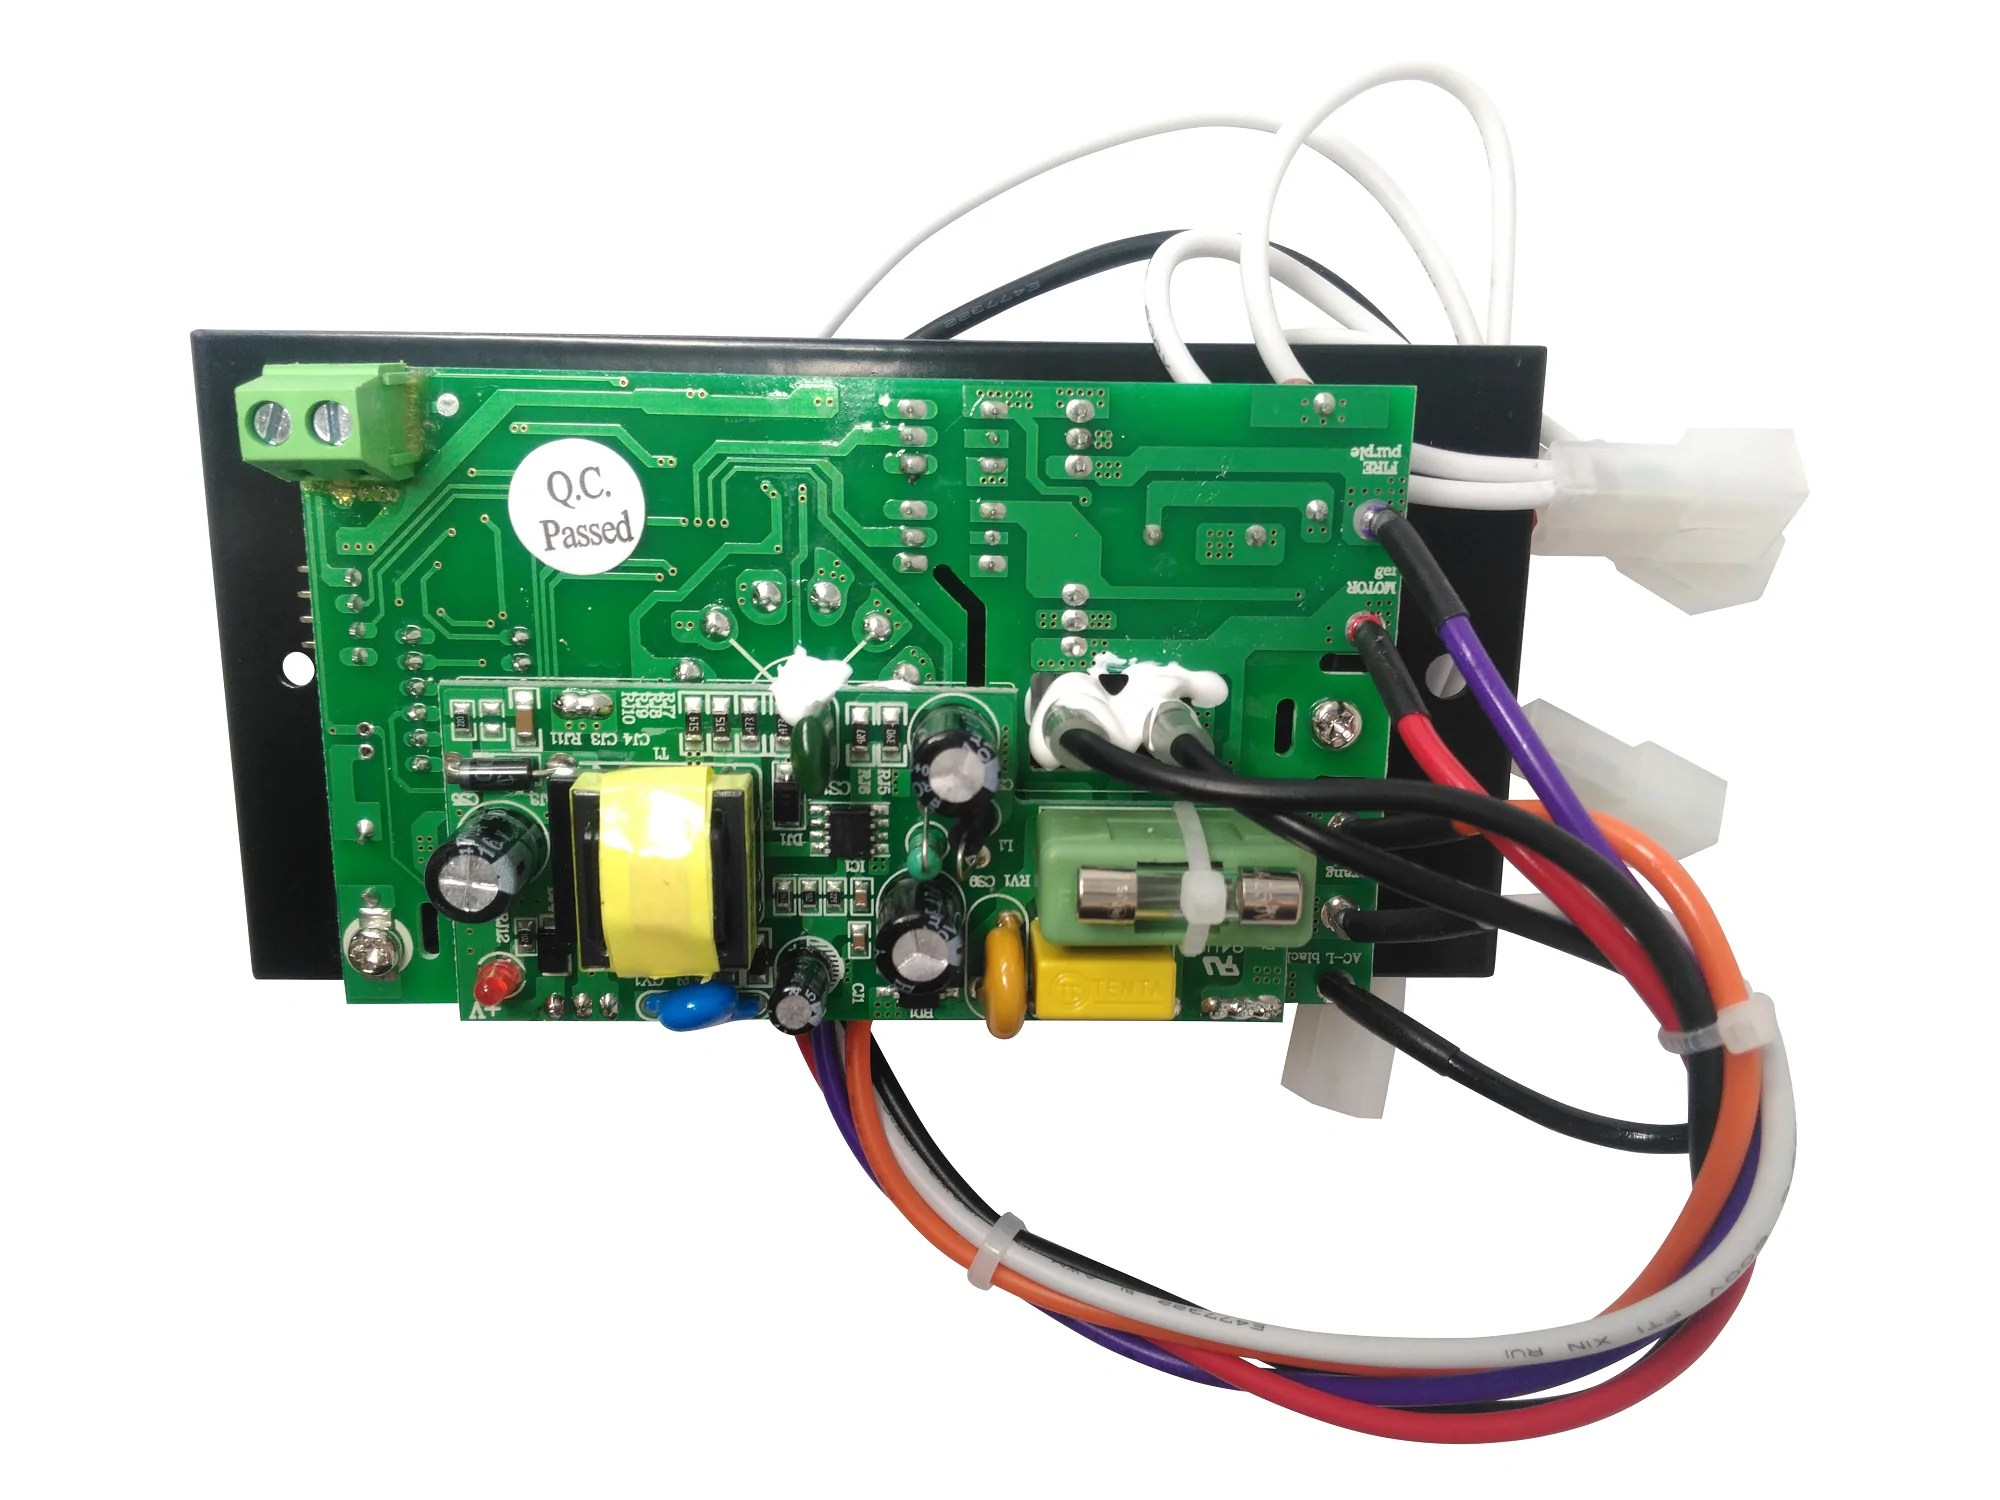 hight resolution of traeger digital thermostat control board for many models bac236 dometic 3313189 000 thermostat wiring diagram traeger digital thermostat wiring diagram